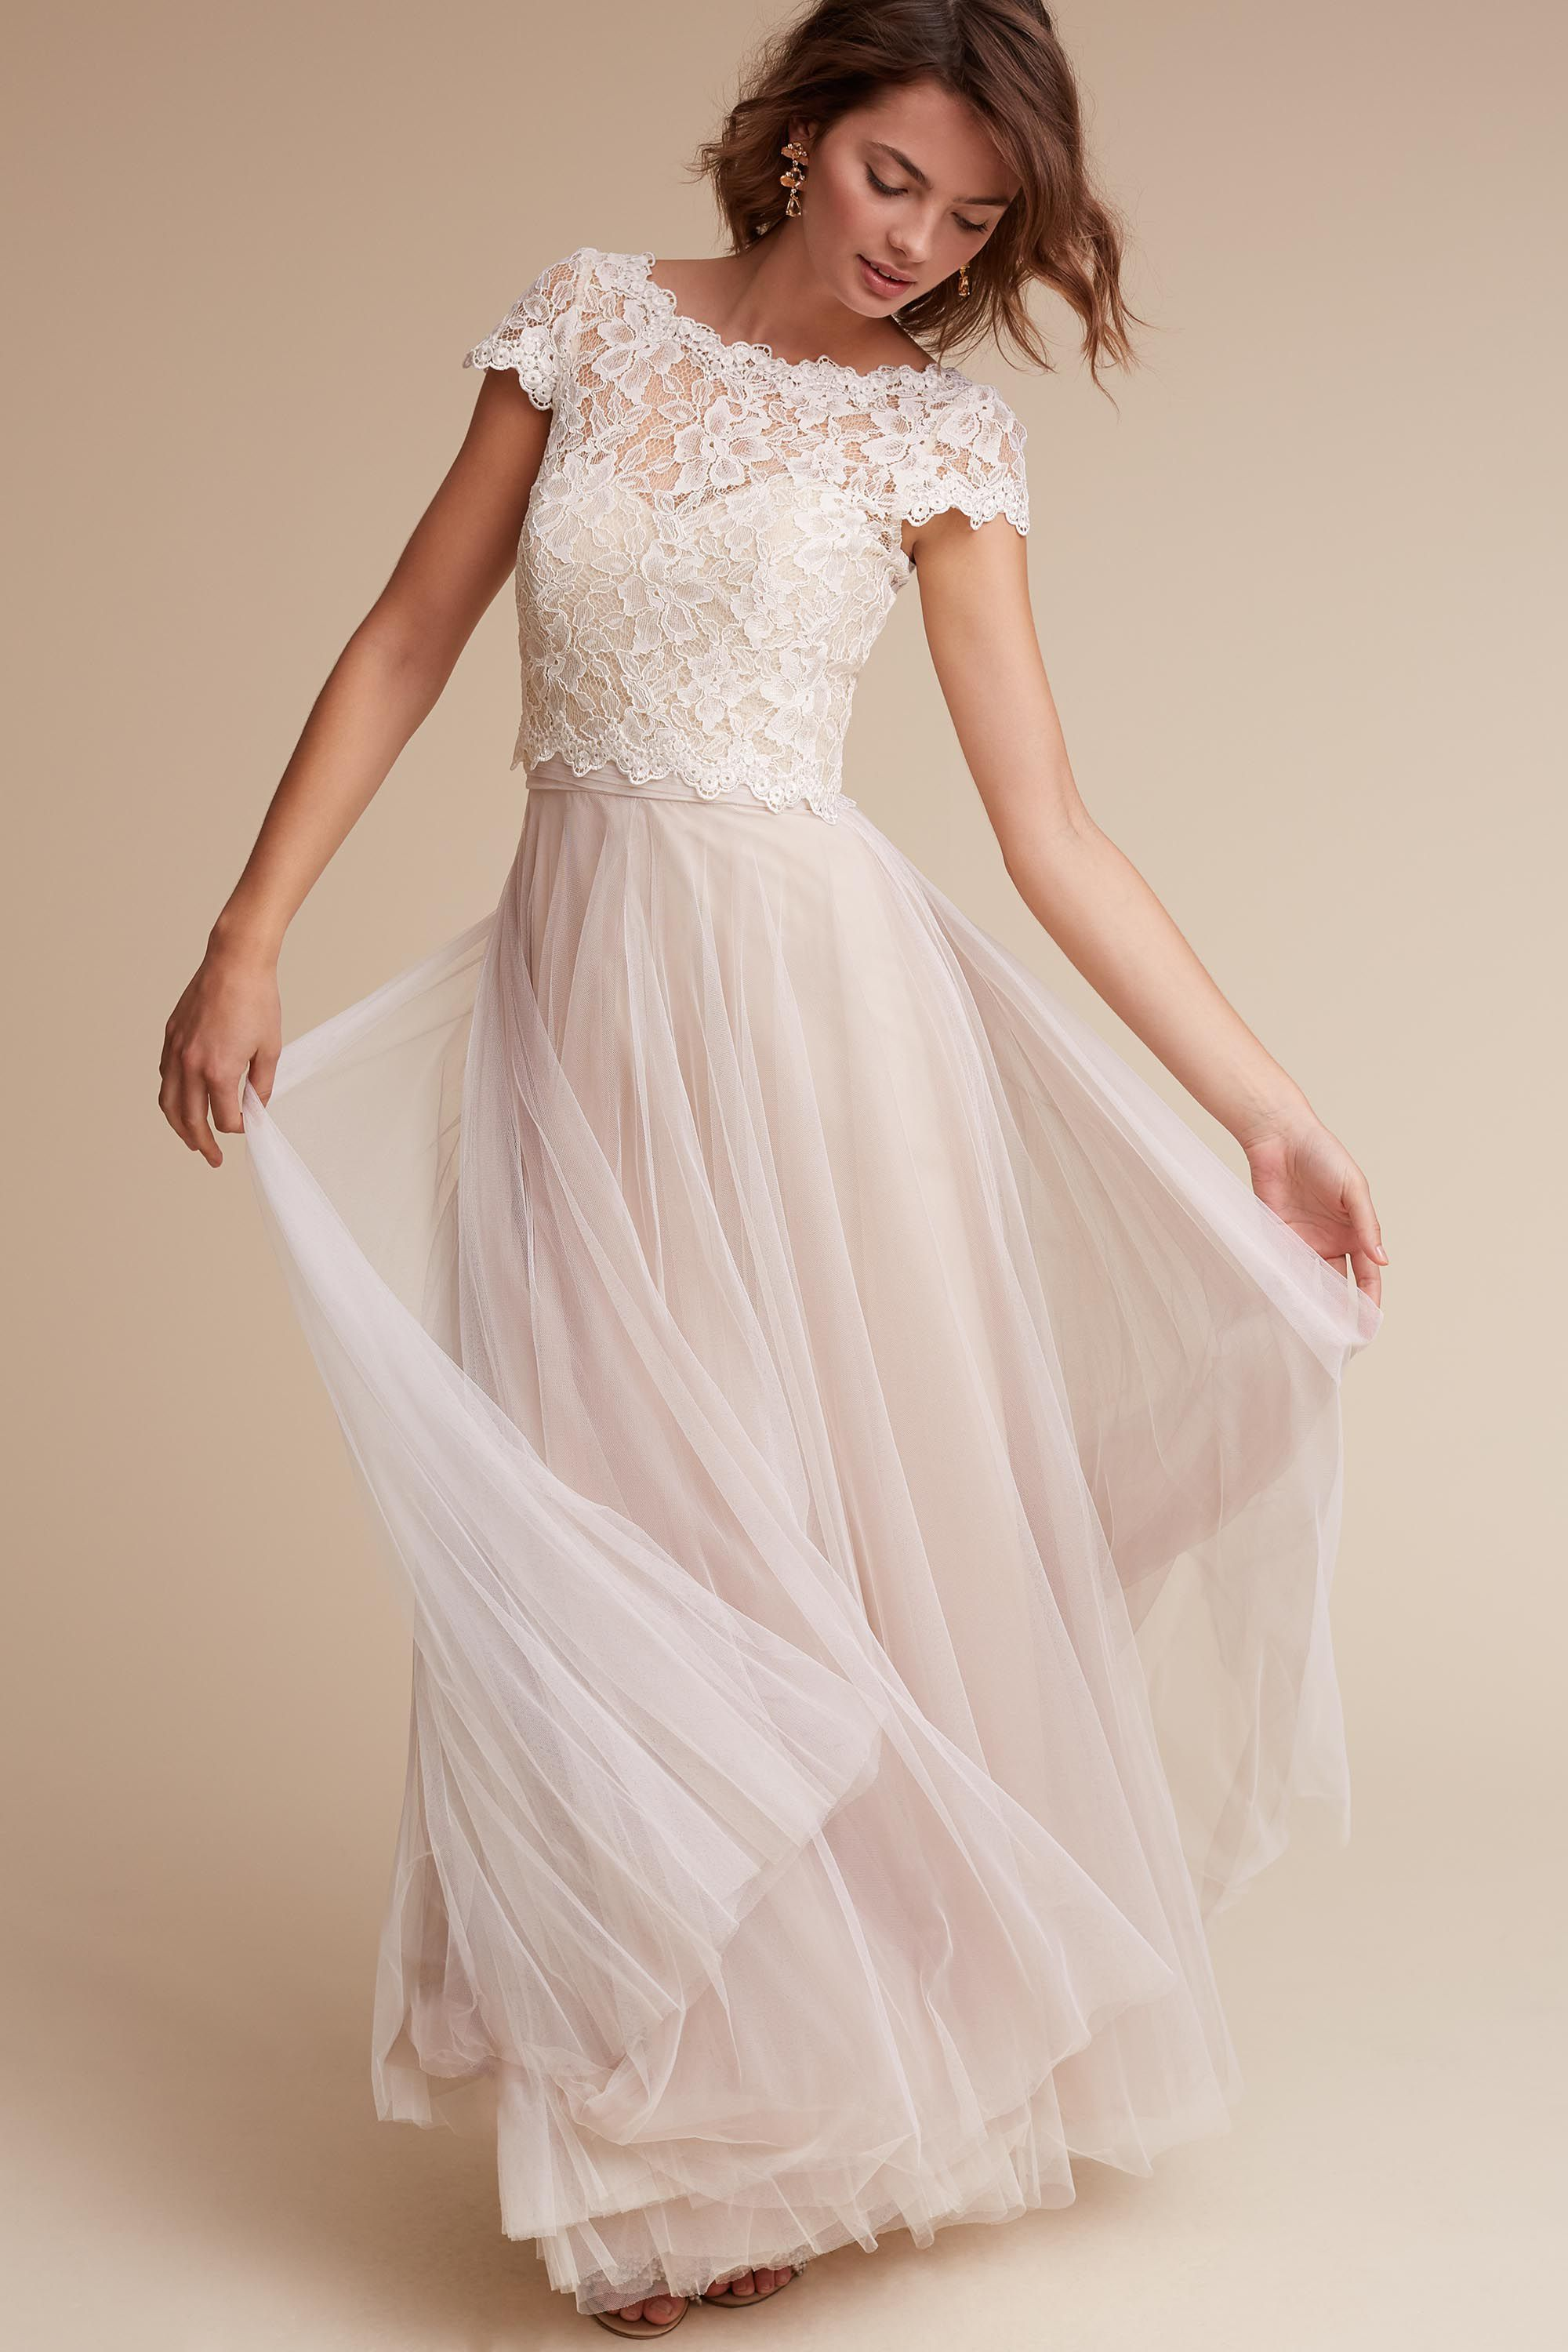 Bhldn sydney topper in bride bhldn top picks for my actual a line two piece long tulle lace simple wedding dress sold by prom dress shop shop more products from prom dress shop on storenvy the home of independent ombrellifo Images